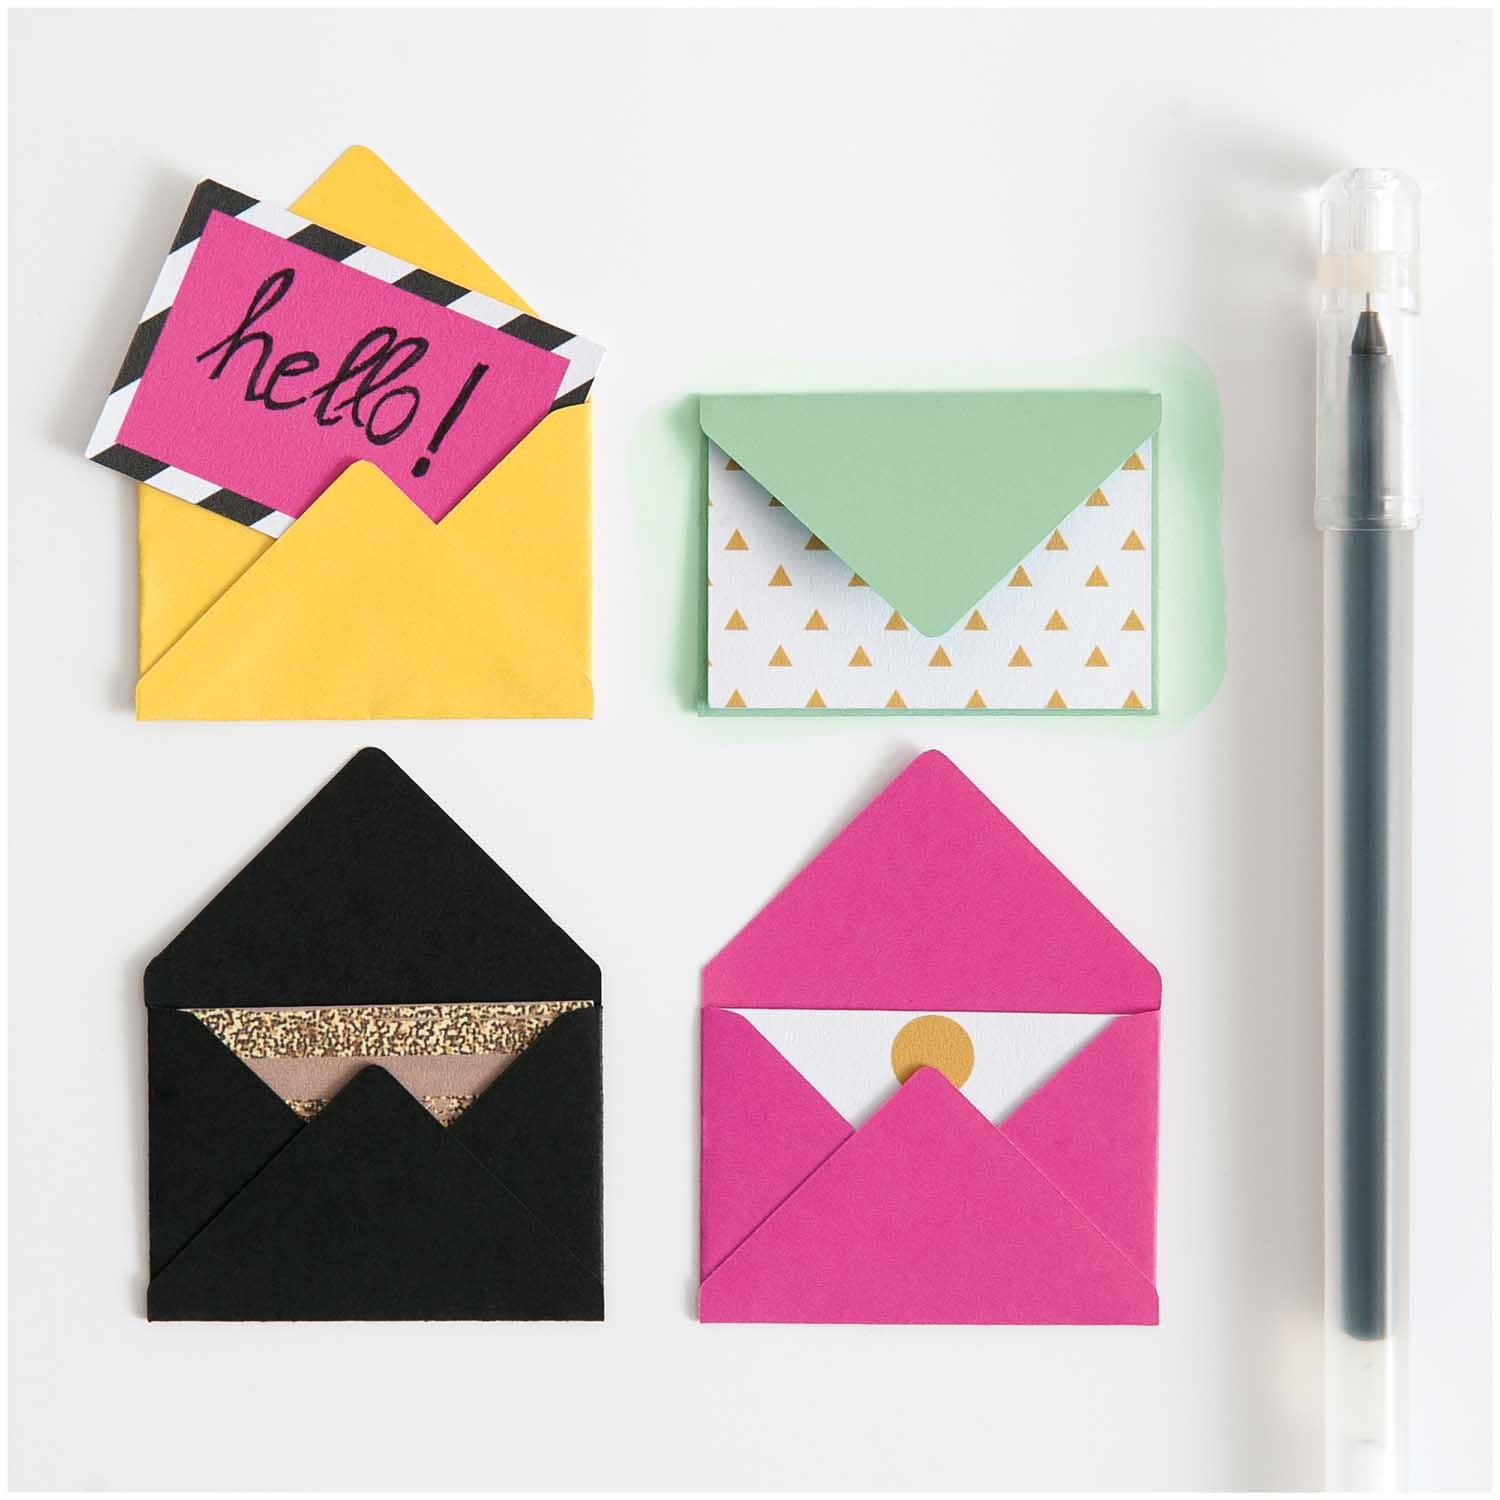 Rico NAY MINI ENVELOPES, PINK 10 PCS, 3 X 4,5 CM